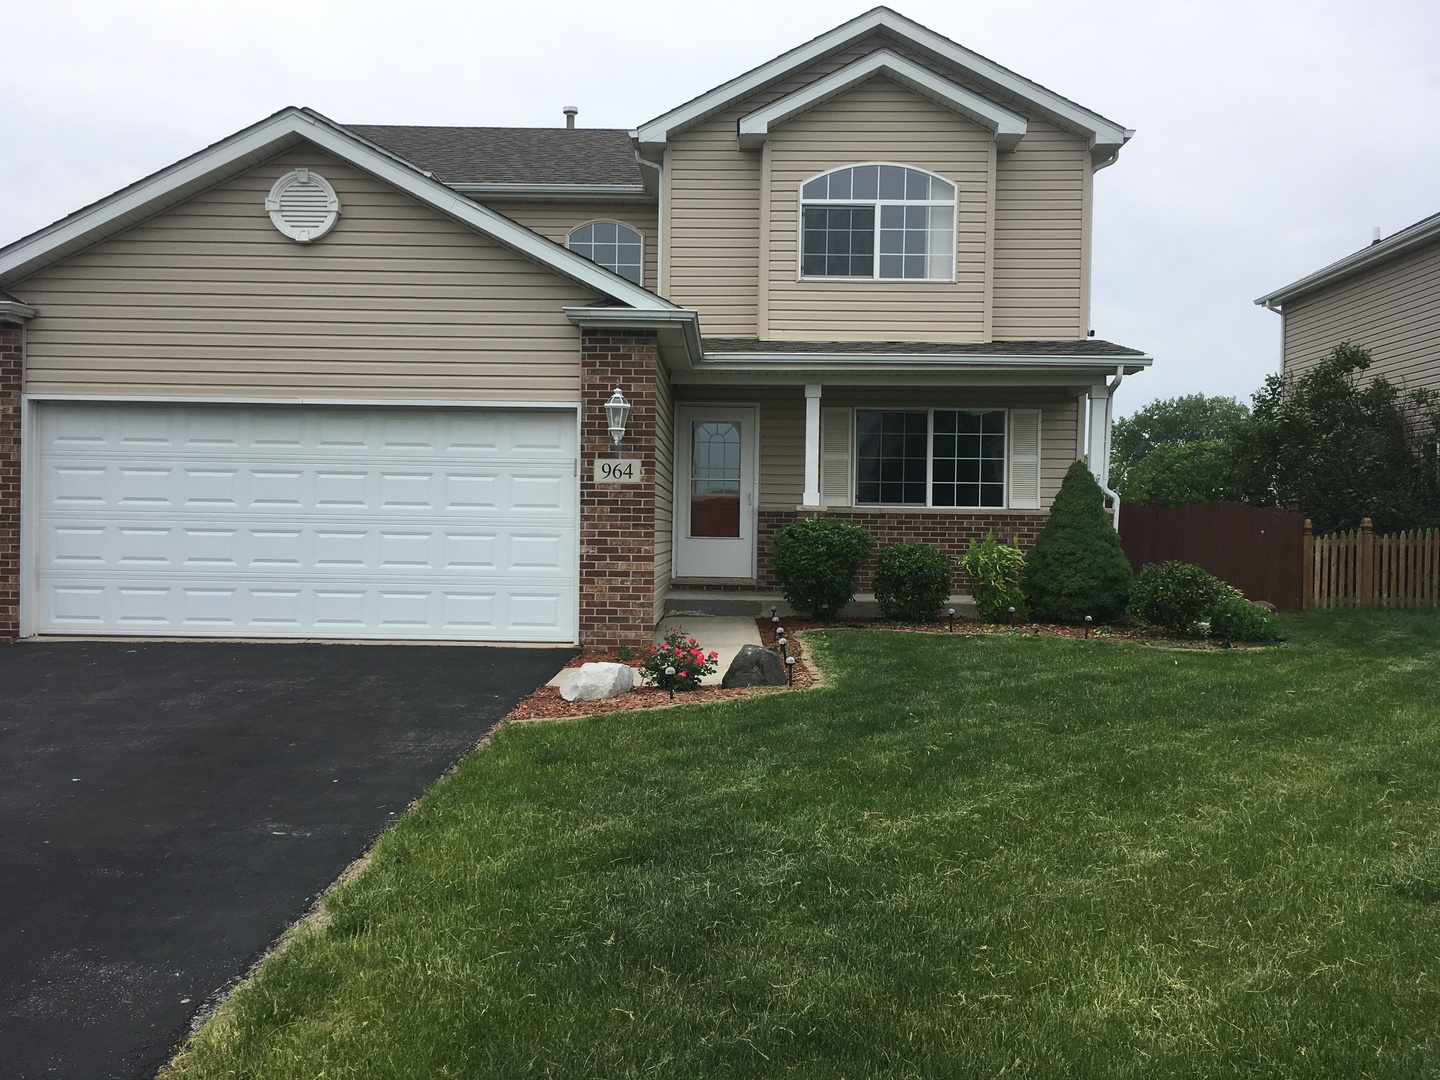 Property for sale at 964 North English Street, Braidwood,  IL 60408